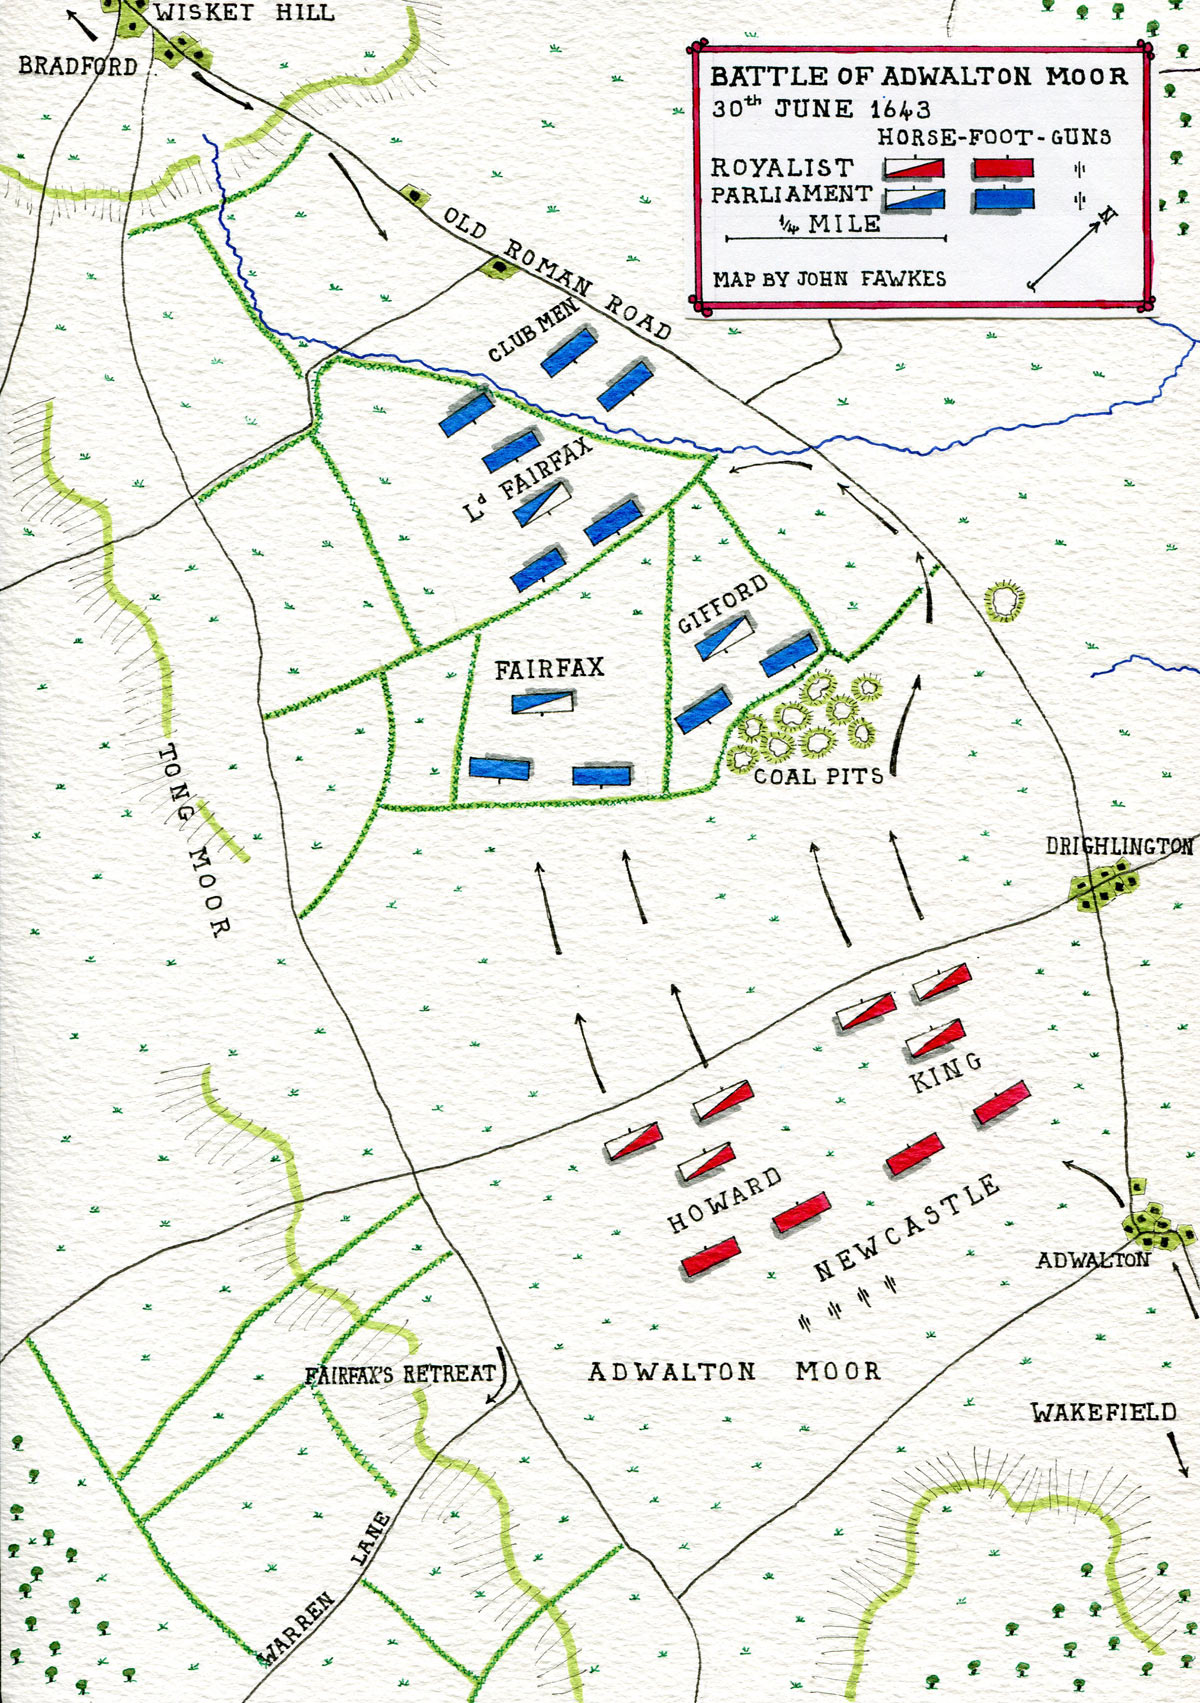 Map of the Battle of Adwalton Moor 30th June 1643 during the English Civil War: map by John Fawkes